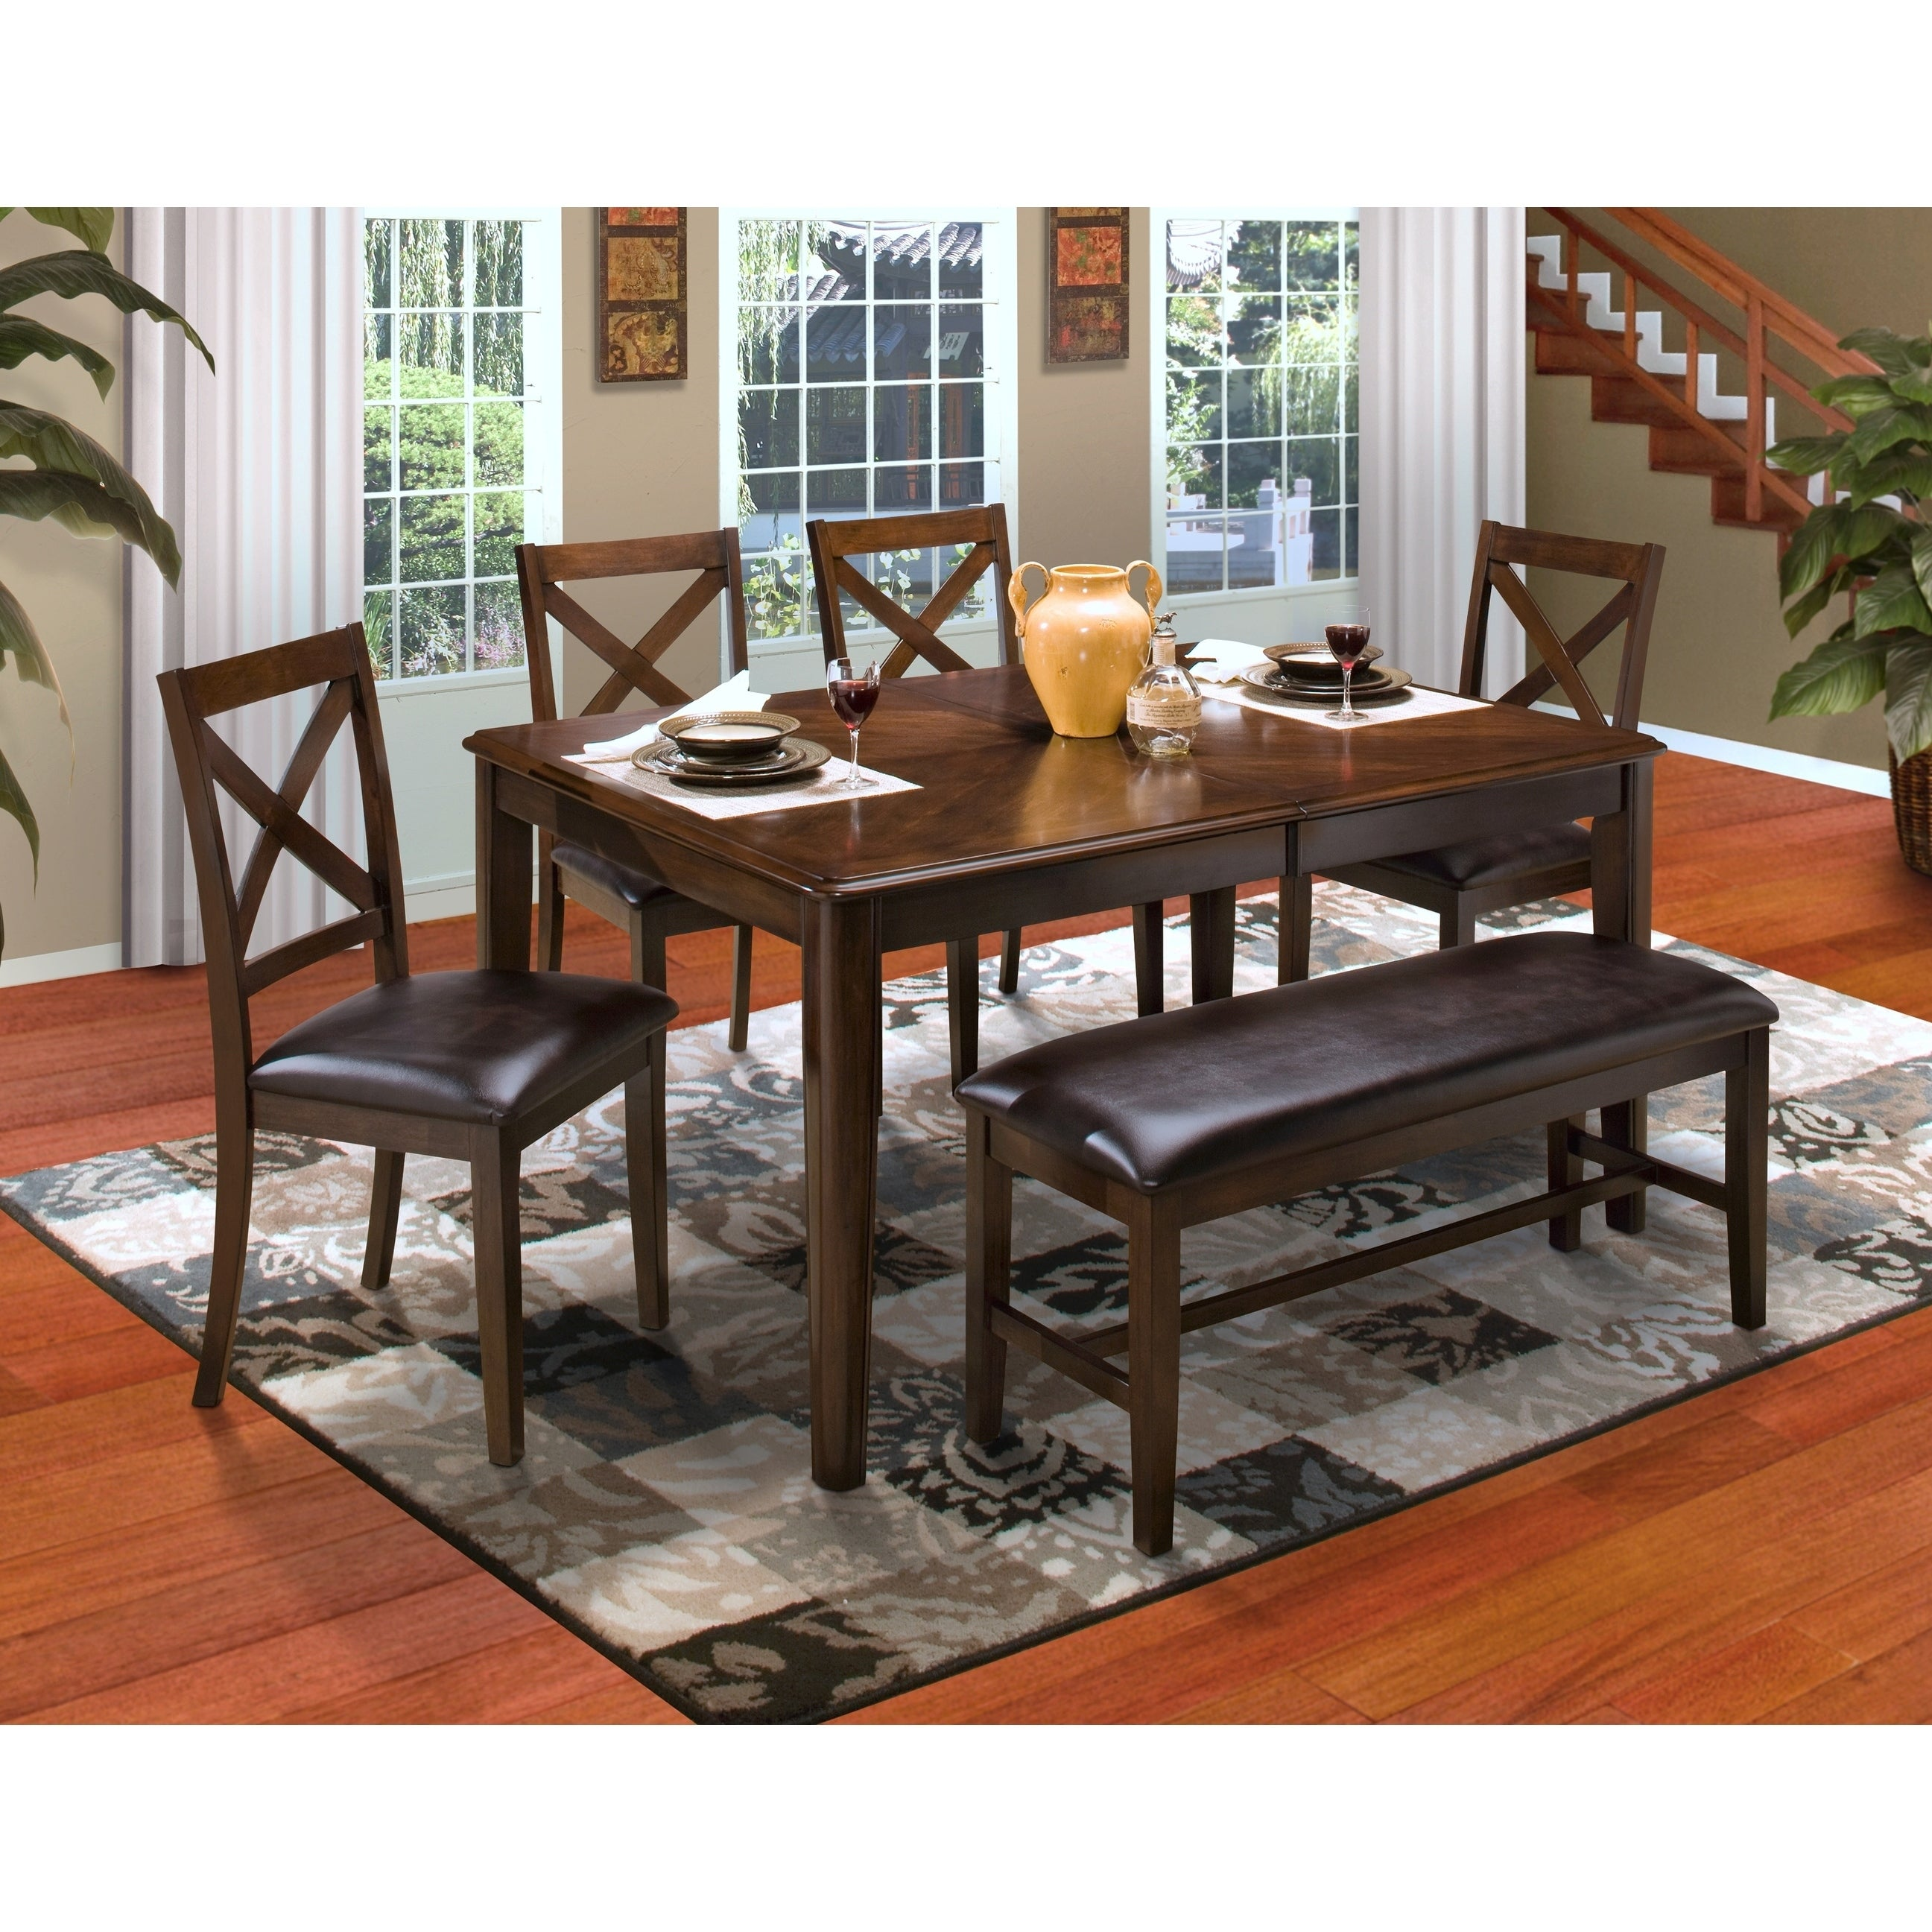 Laudes Chestnut Round Corner Dining Table Free Shipping Today 26109914